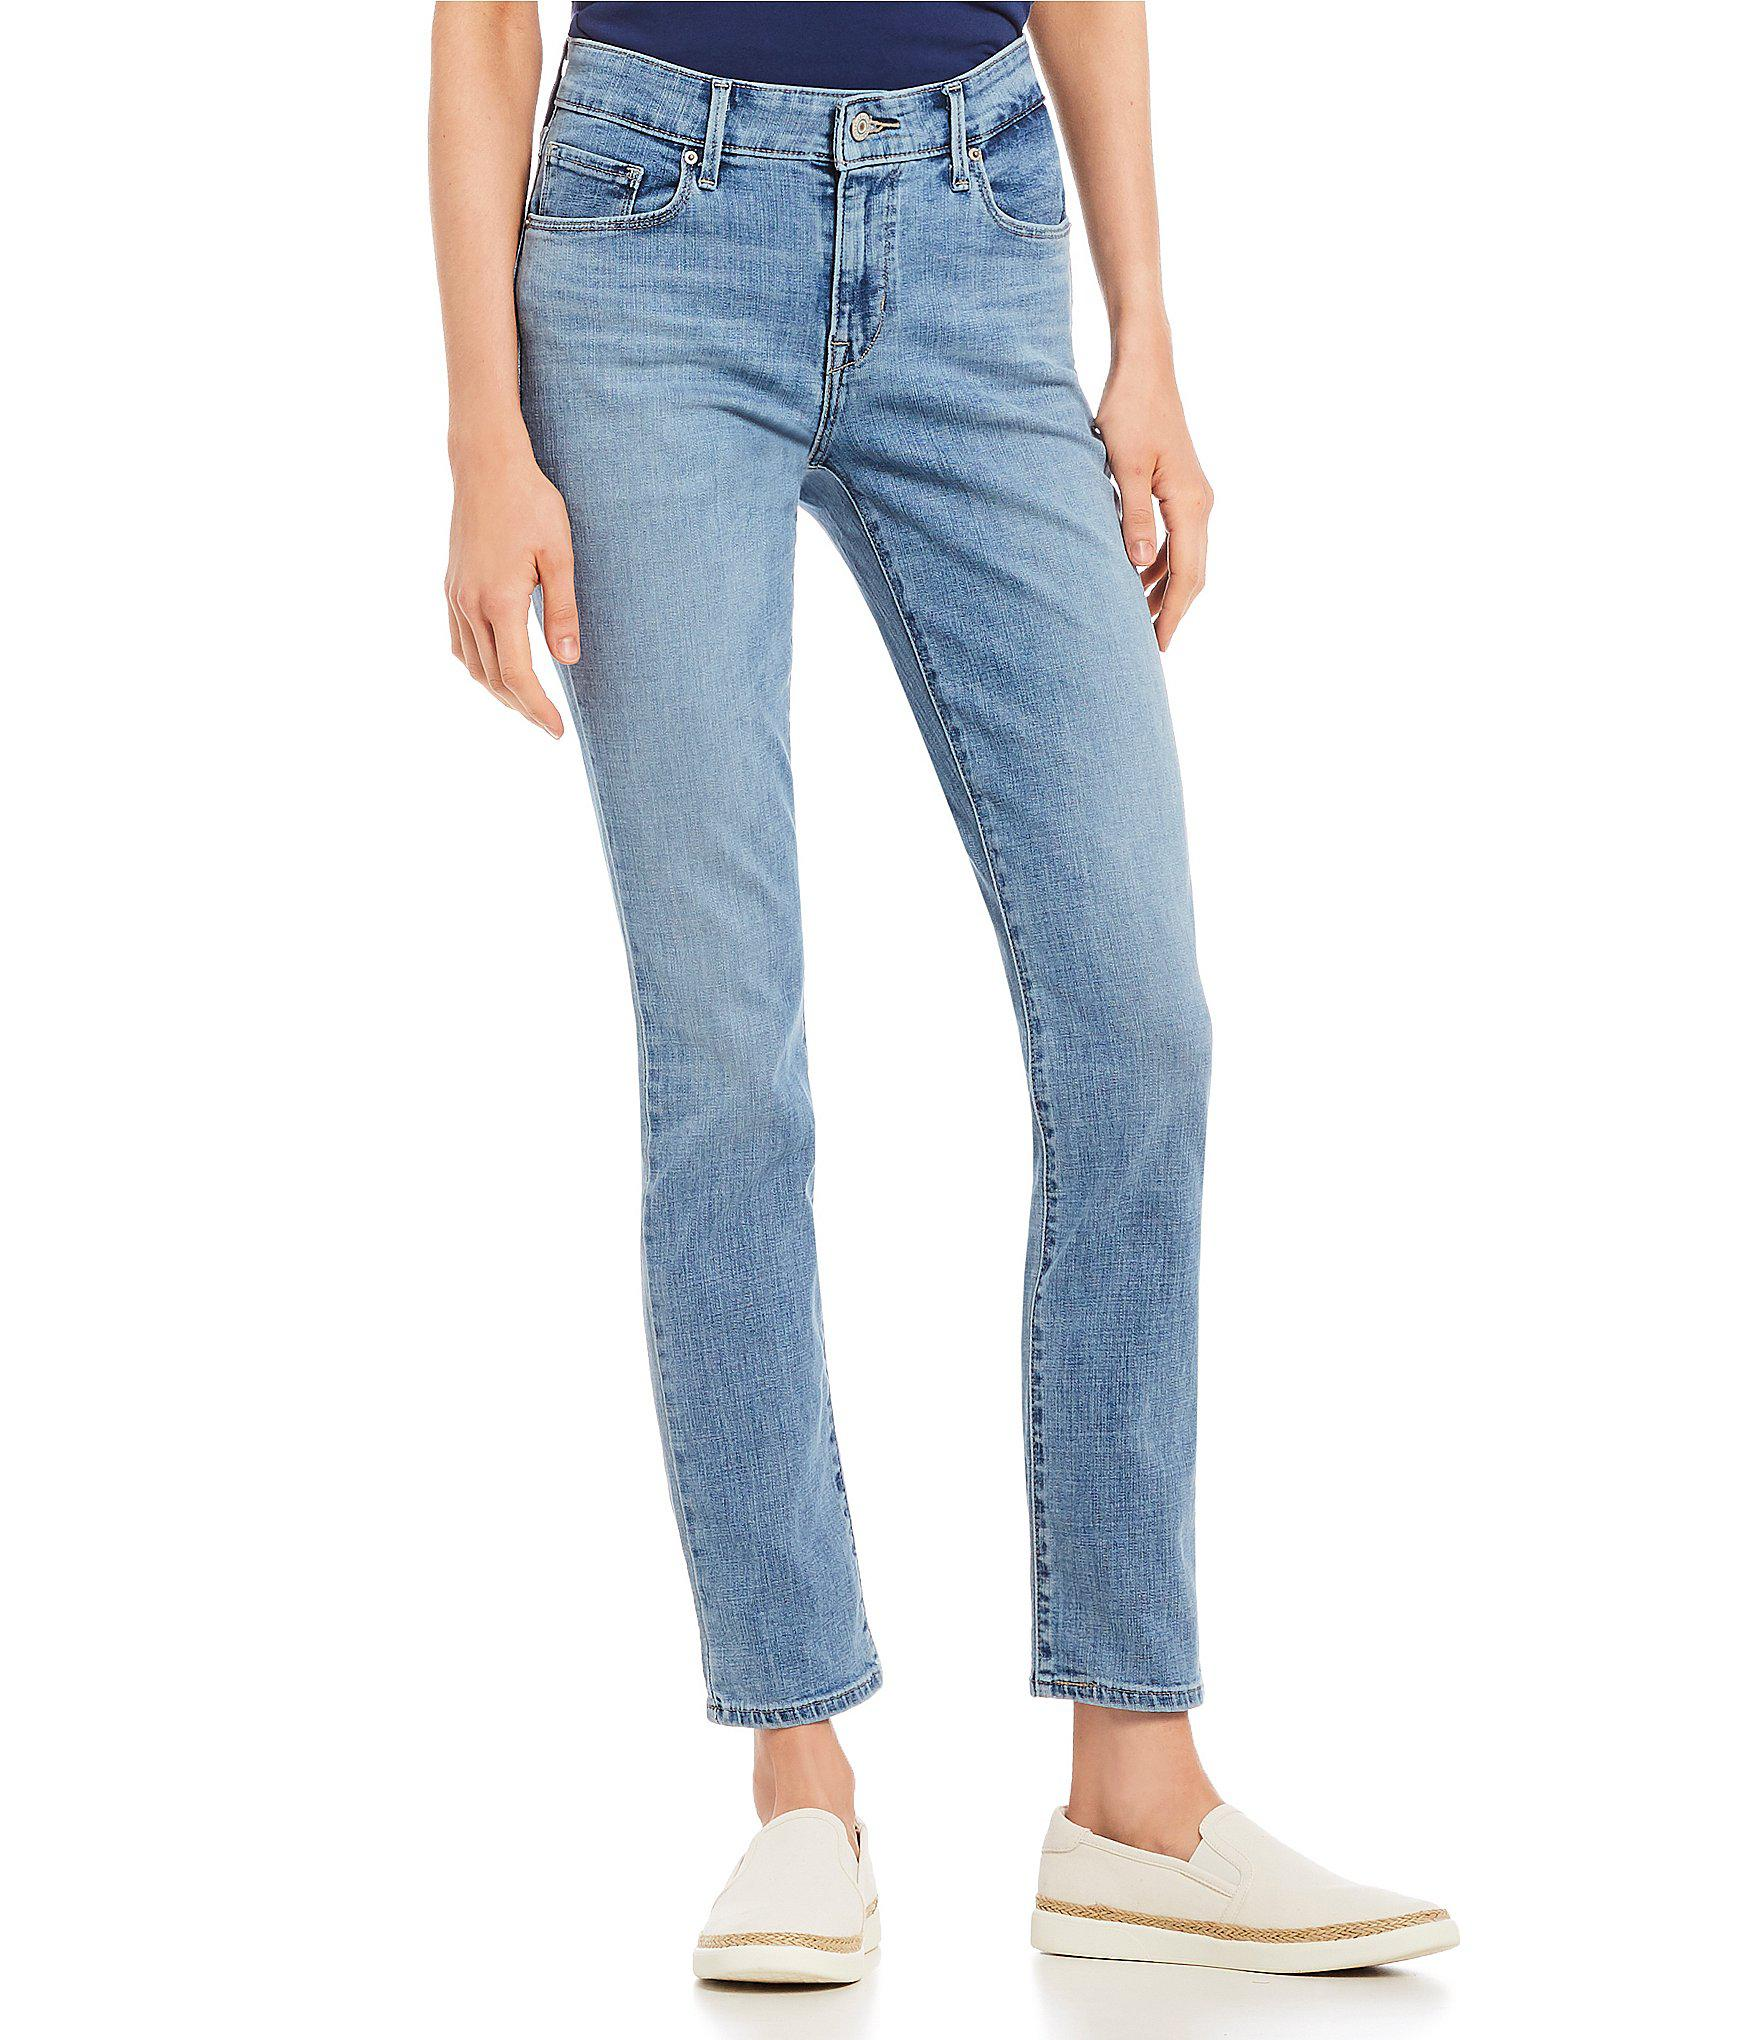 85350d7a84f Lyst - Levi s Classic Mid Rise Skinny Jeans in Blue